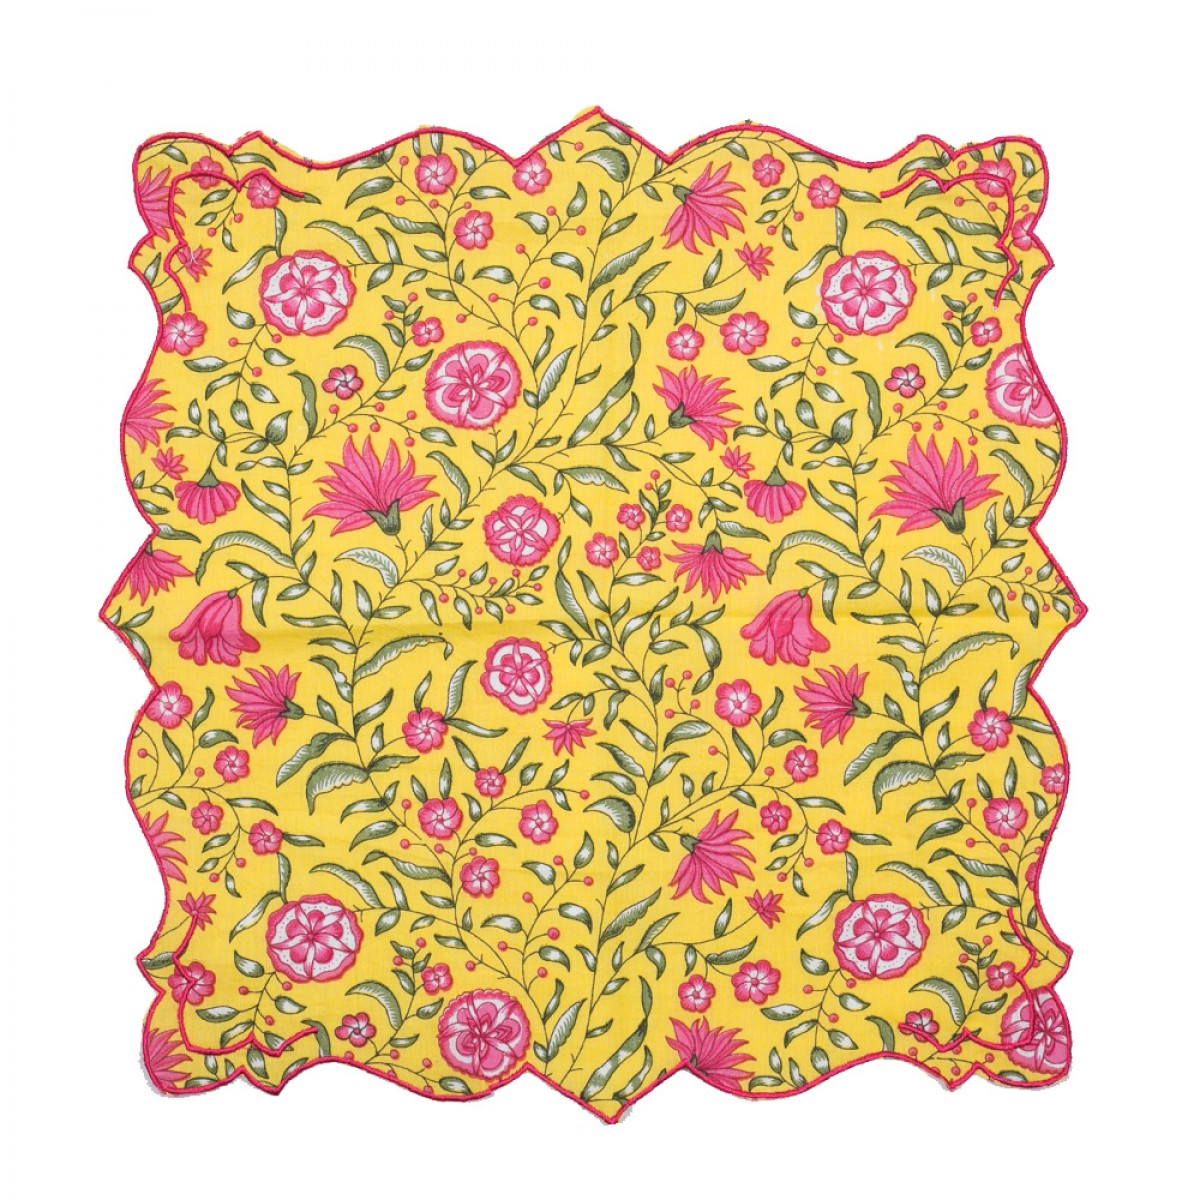 Cotton Scallop Embroidered Printed Napkin - Mughal Garden (Set of 6)